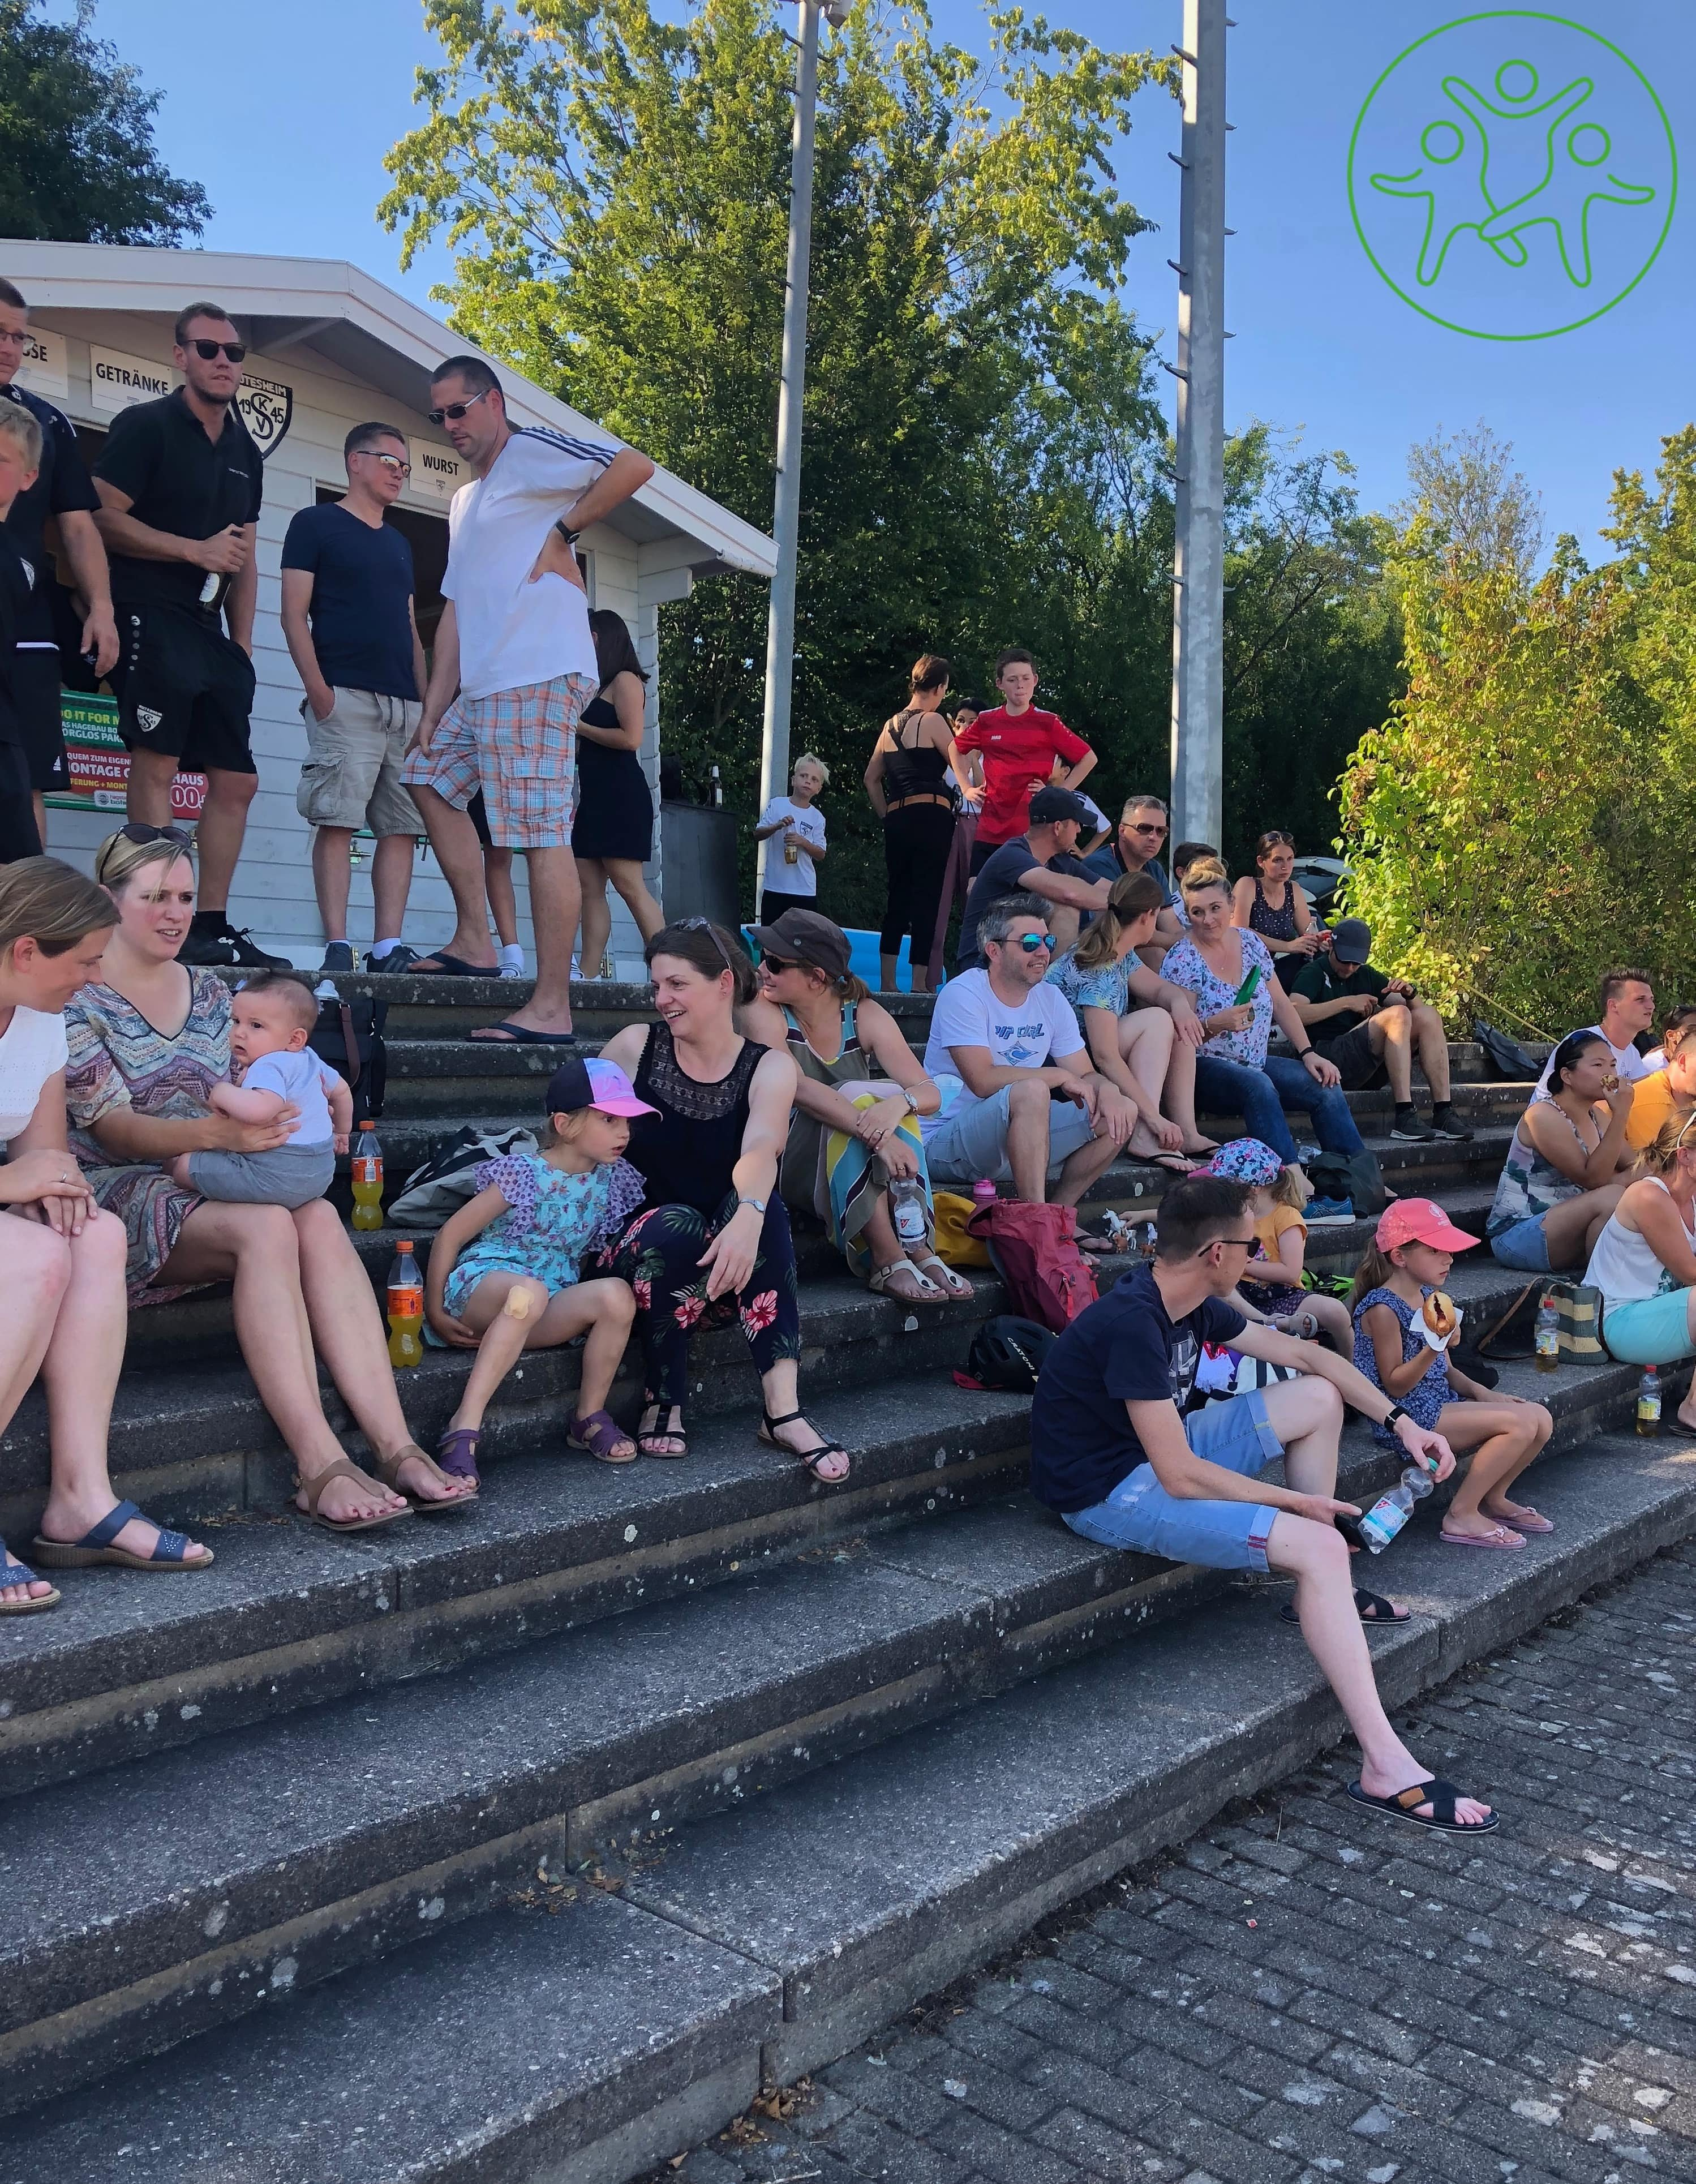 Home-of-goals-kids-beim-sommerfest-min